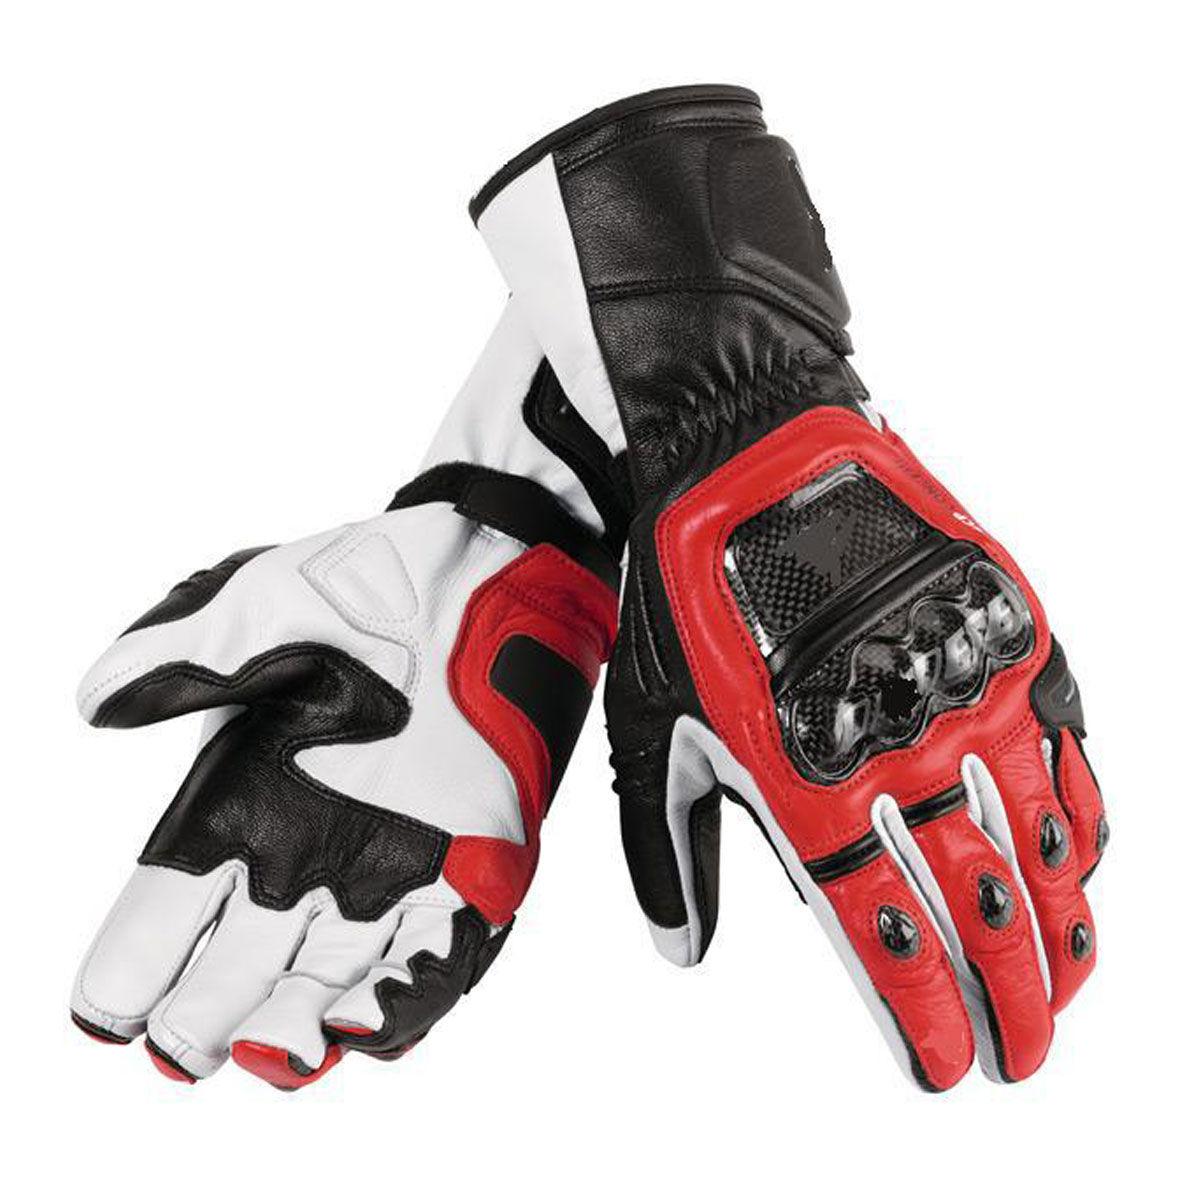 BLACK MOTORBIKE GLOVES WITH RED & WHITE DESIGN